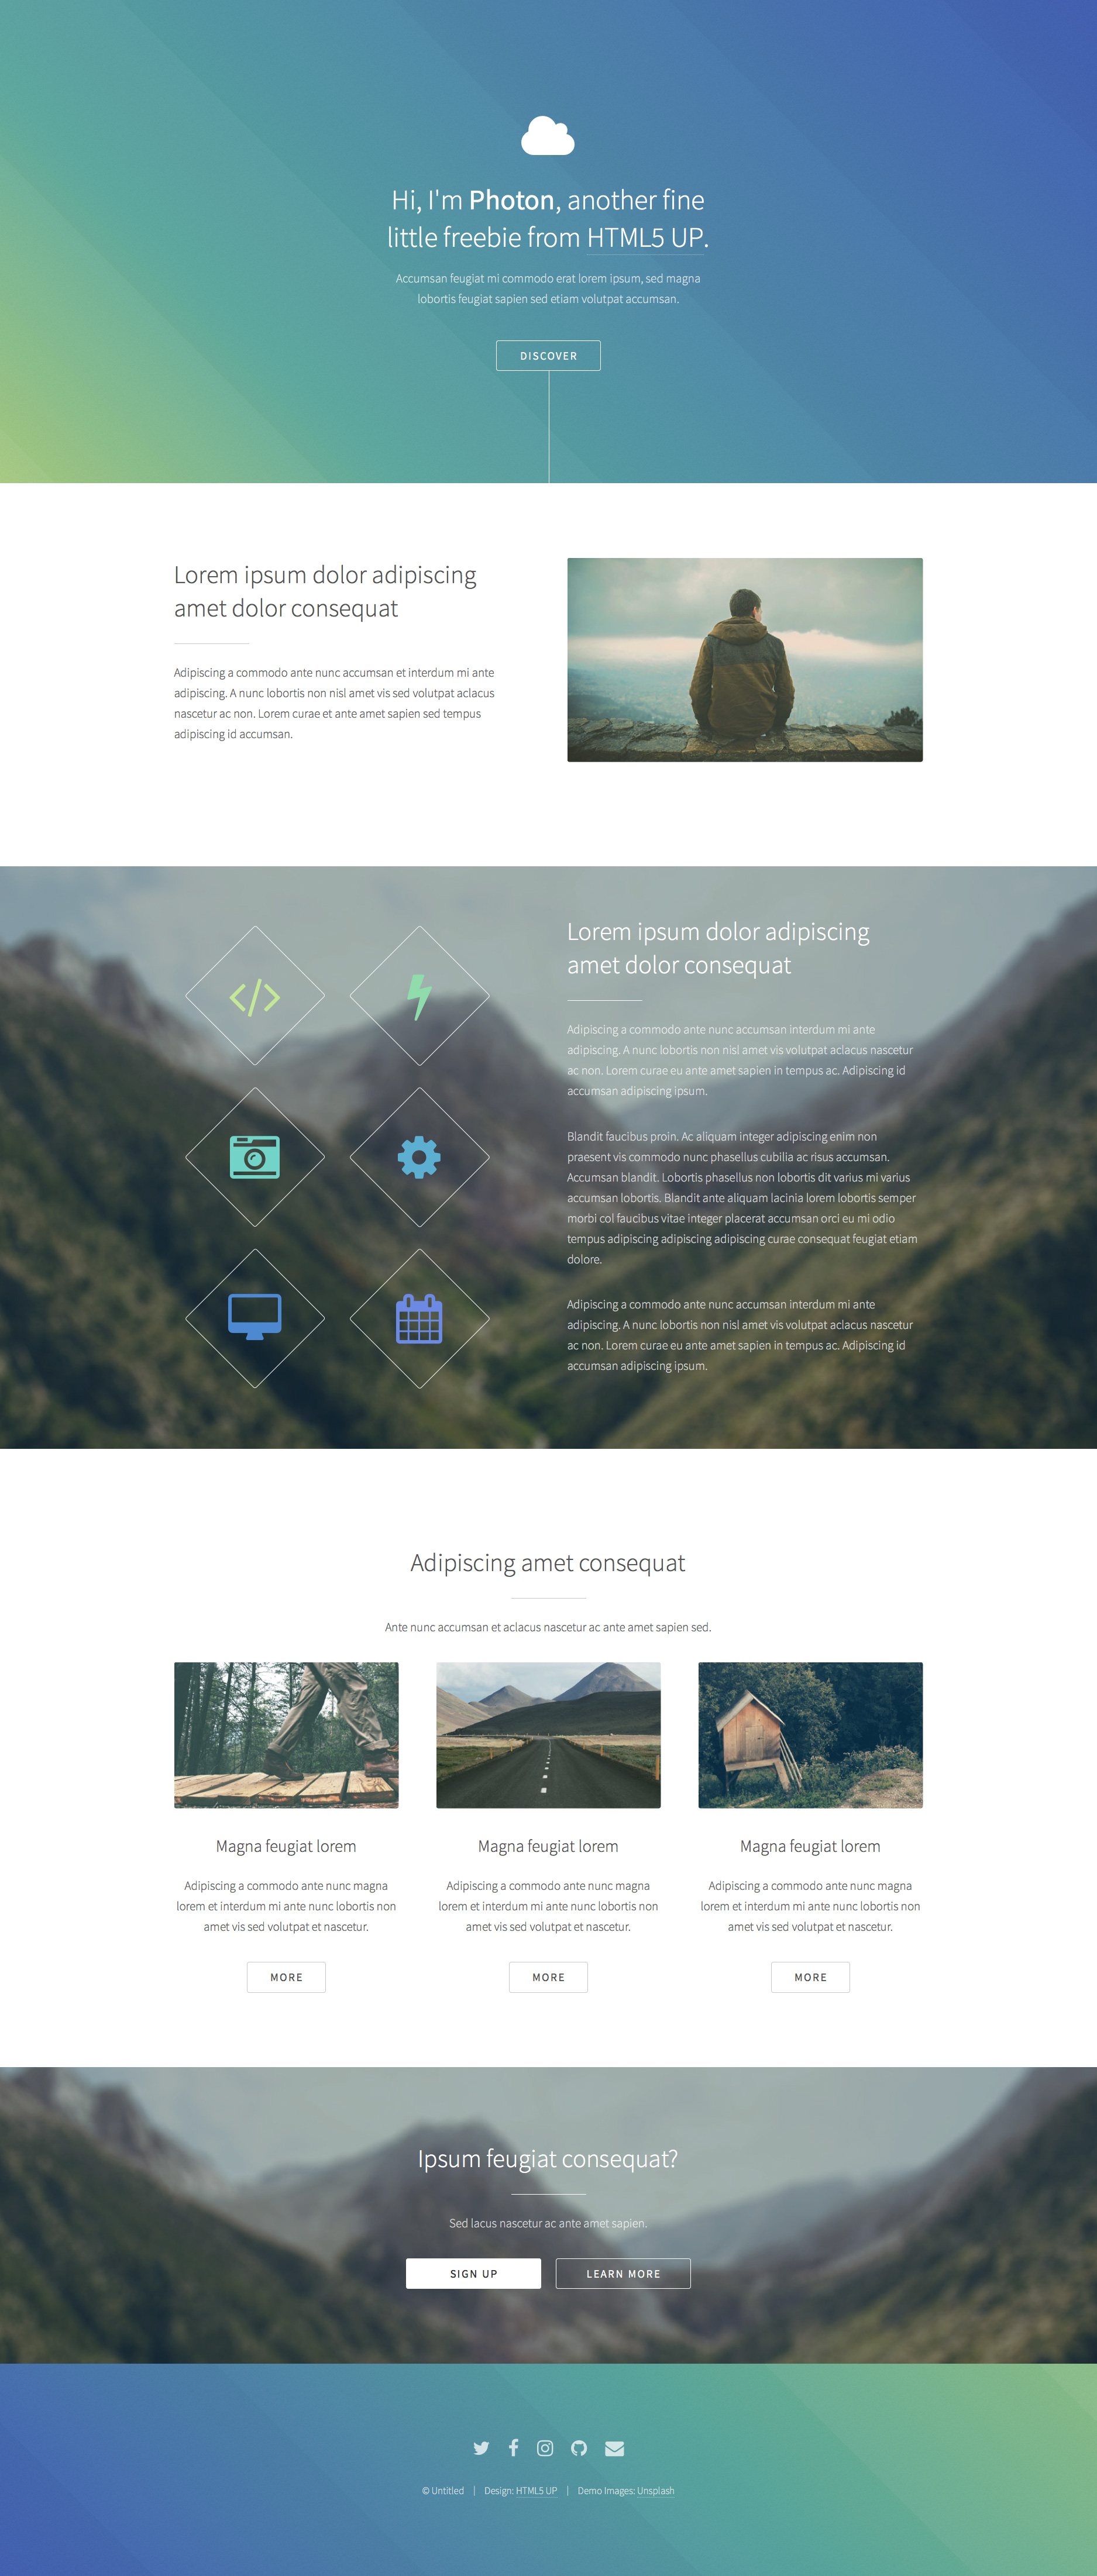 Photon is a simple (gradient-heavy) free responsive HTML5 One Page website template. It is fully responsive, retina ready HTML5 template built on Sass, and as usual, loaded with an assortment of pre-styled elements.